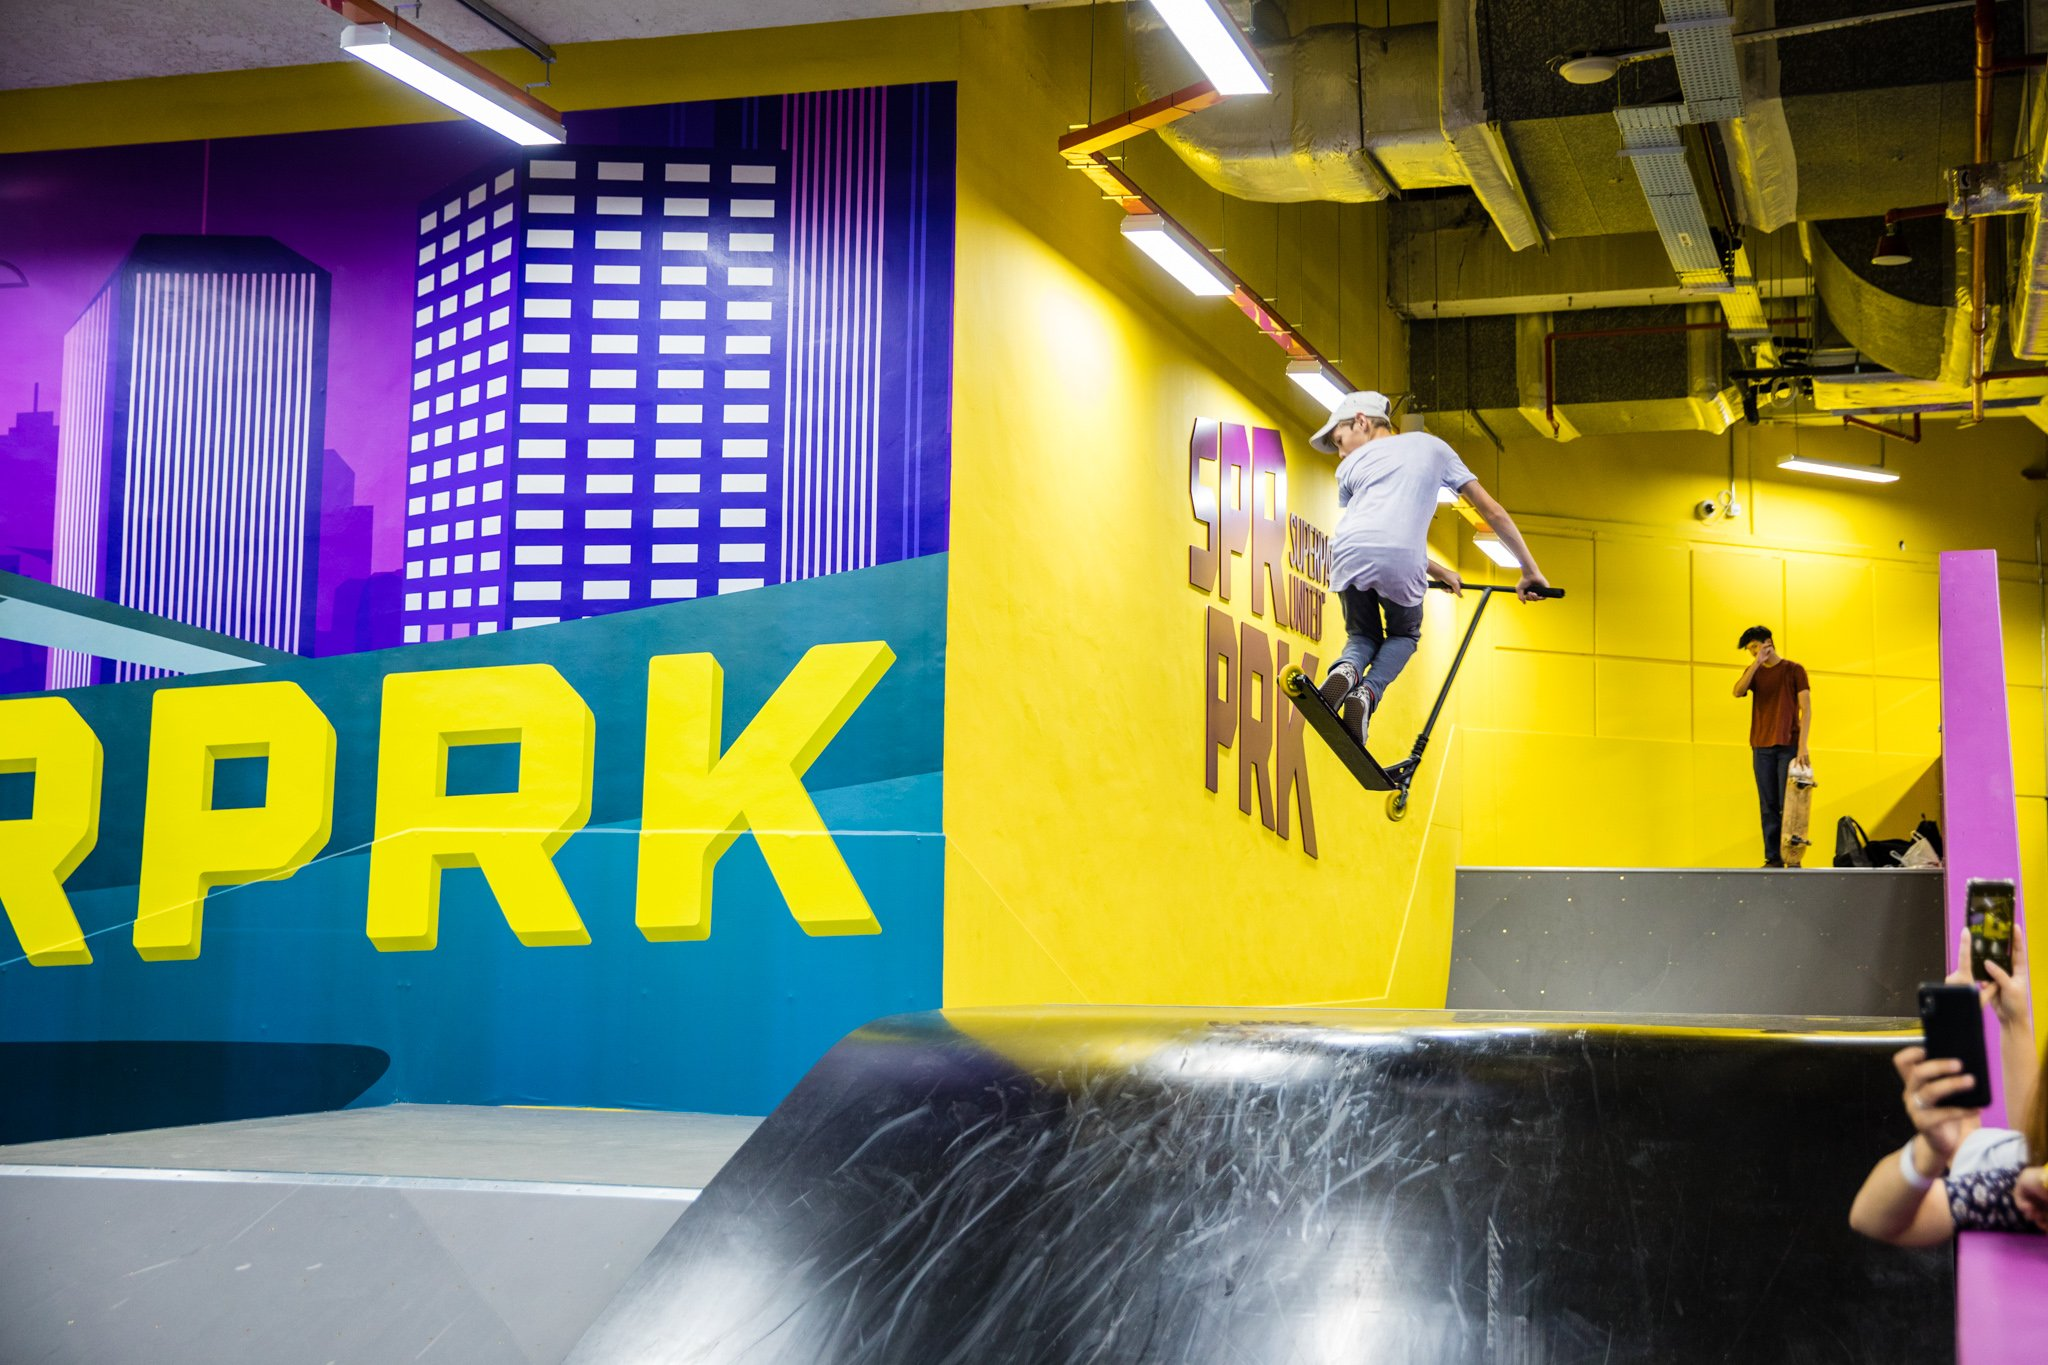 A dedicated skatepark for skaters and scooters to hone their skills.